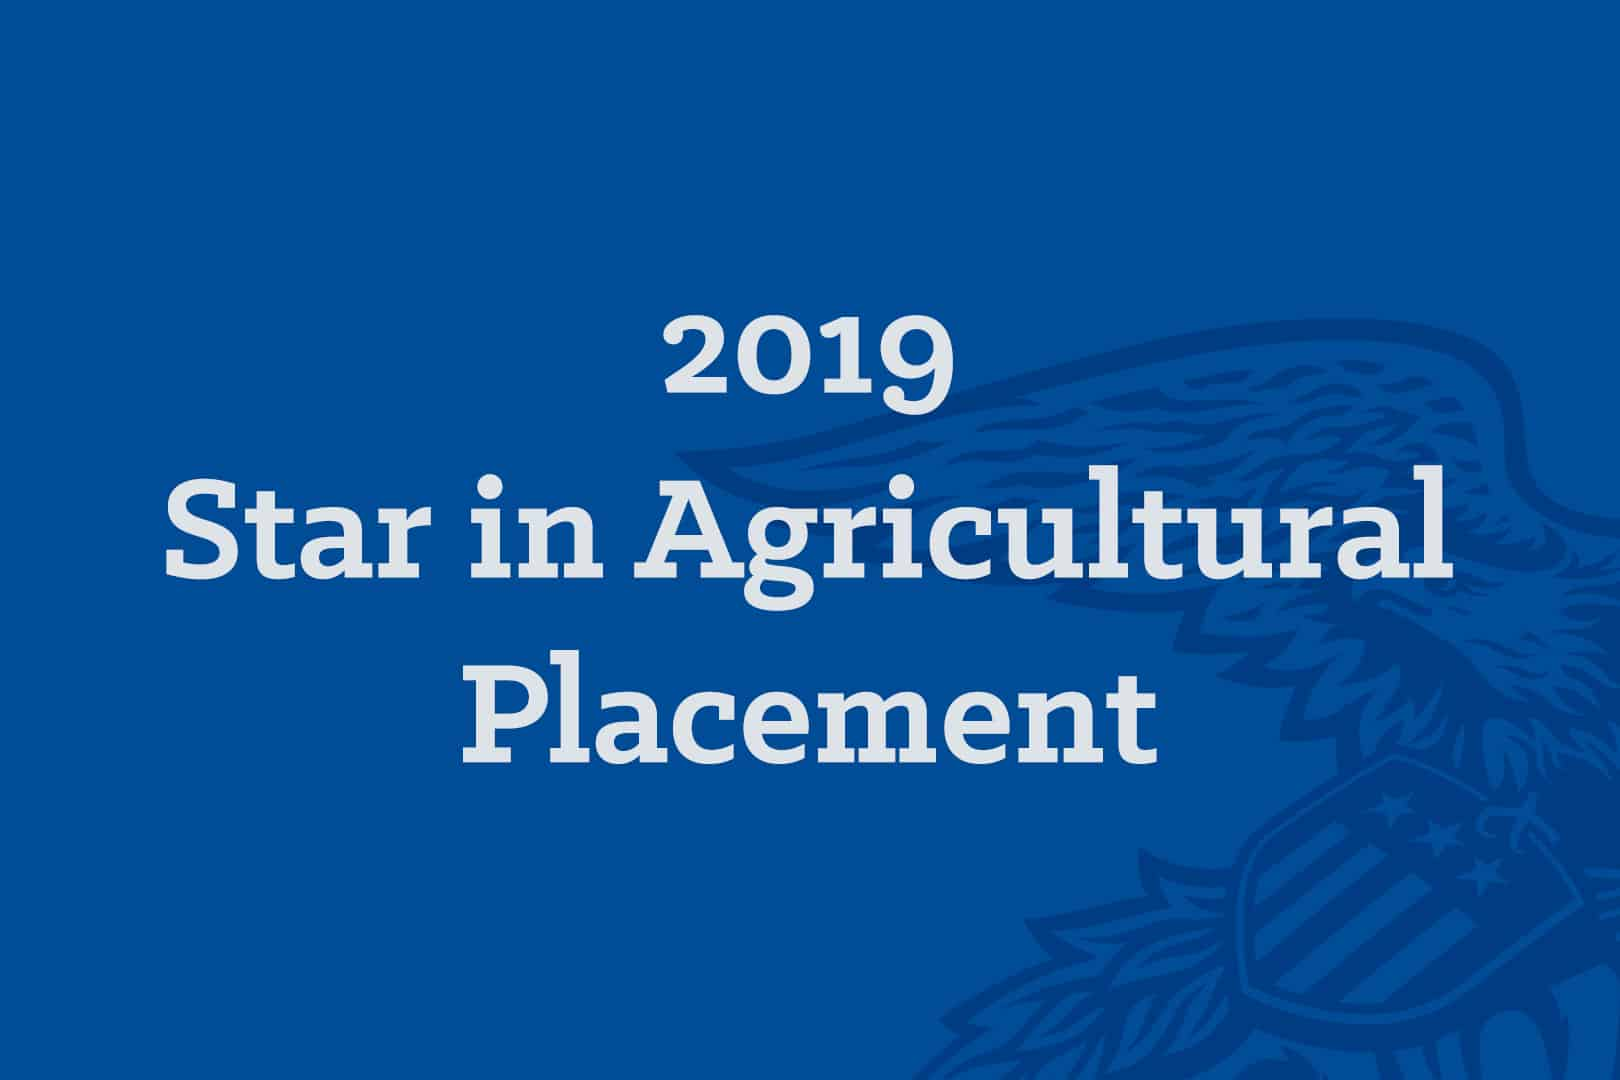 2019 Star in Agricultural Placement 600x400